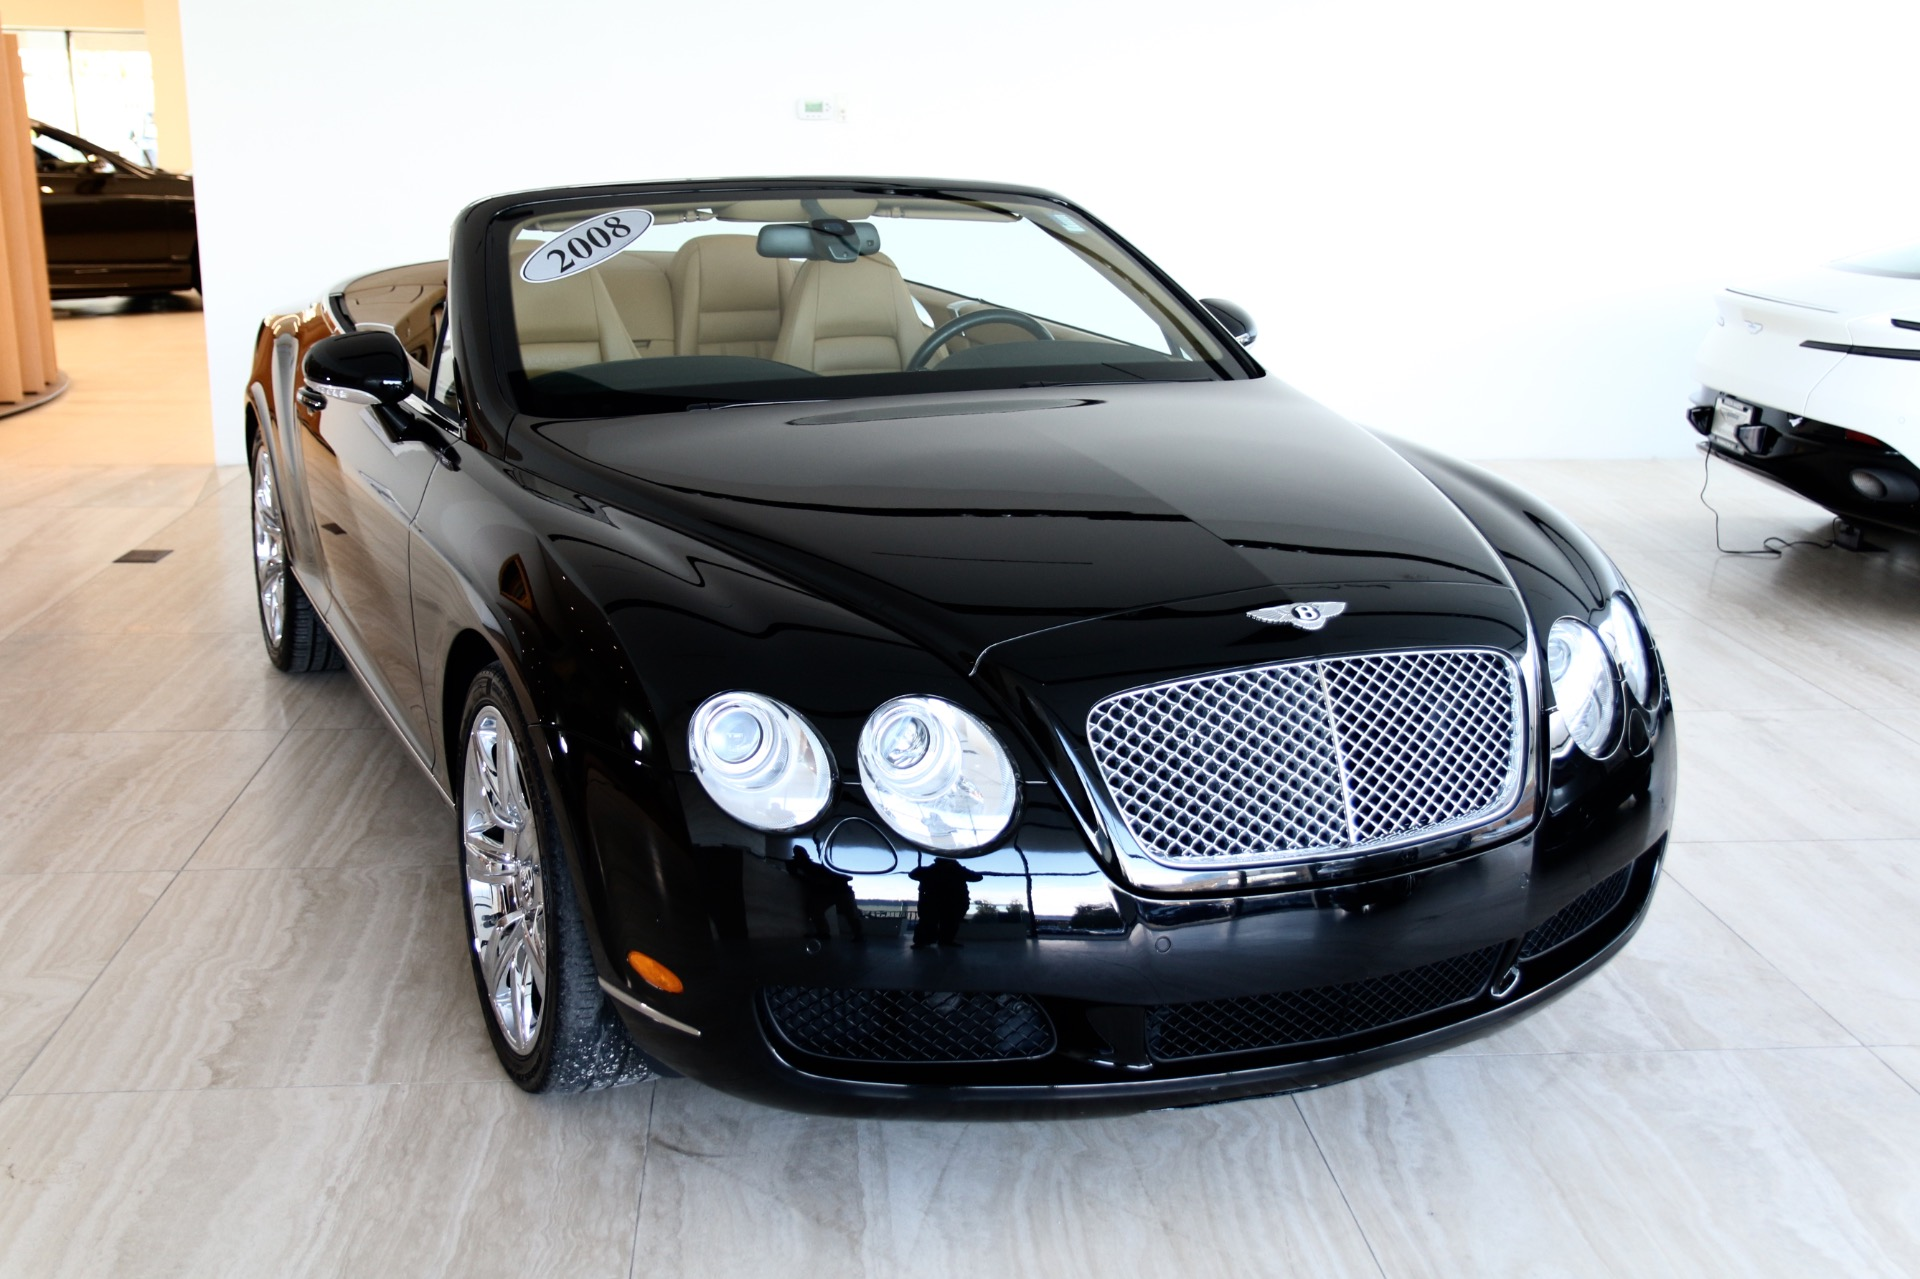 Lease Specials Near Me >> 2008 Bentley Continental GTC GT Stock # P210398B for sale ...